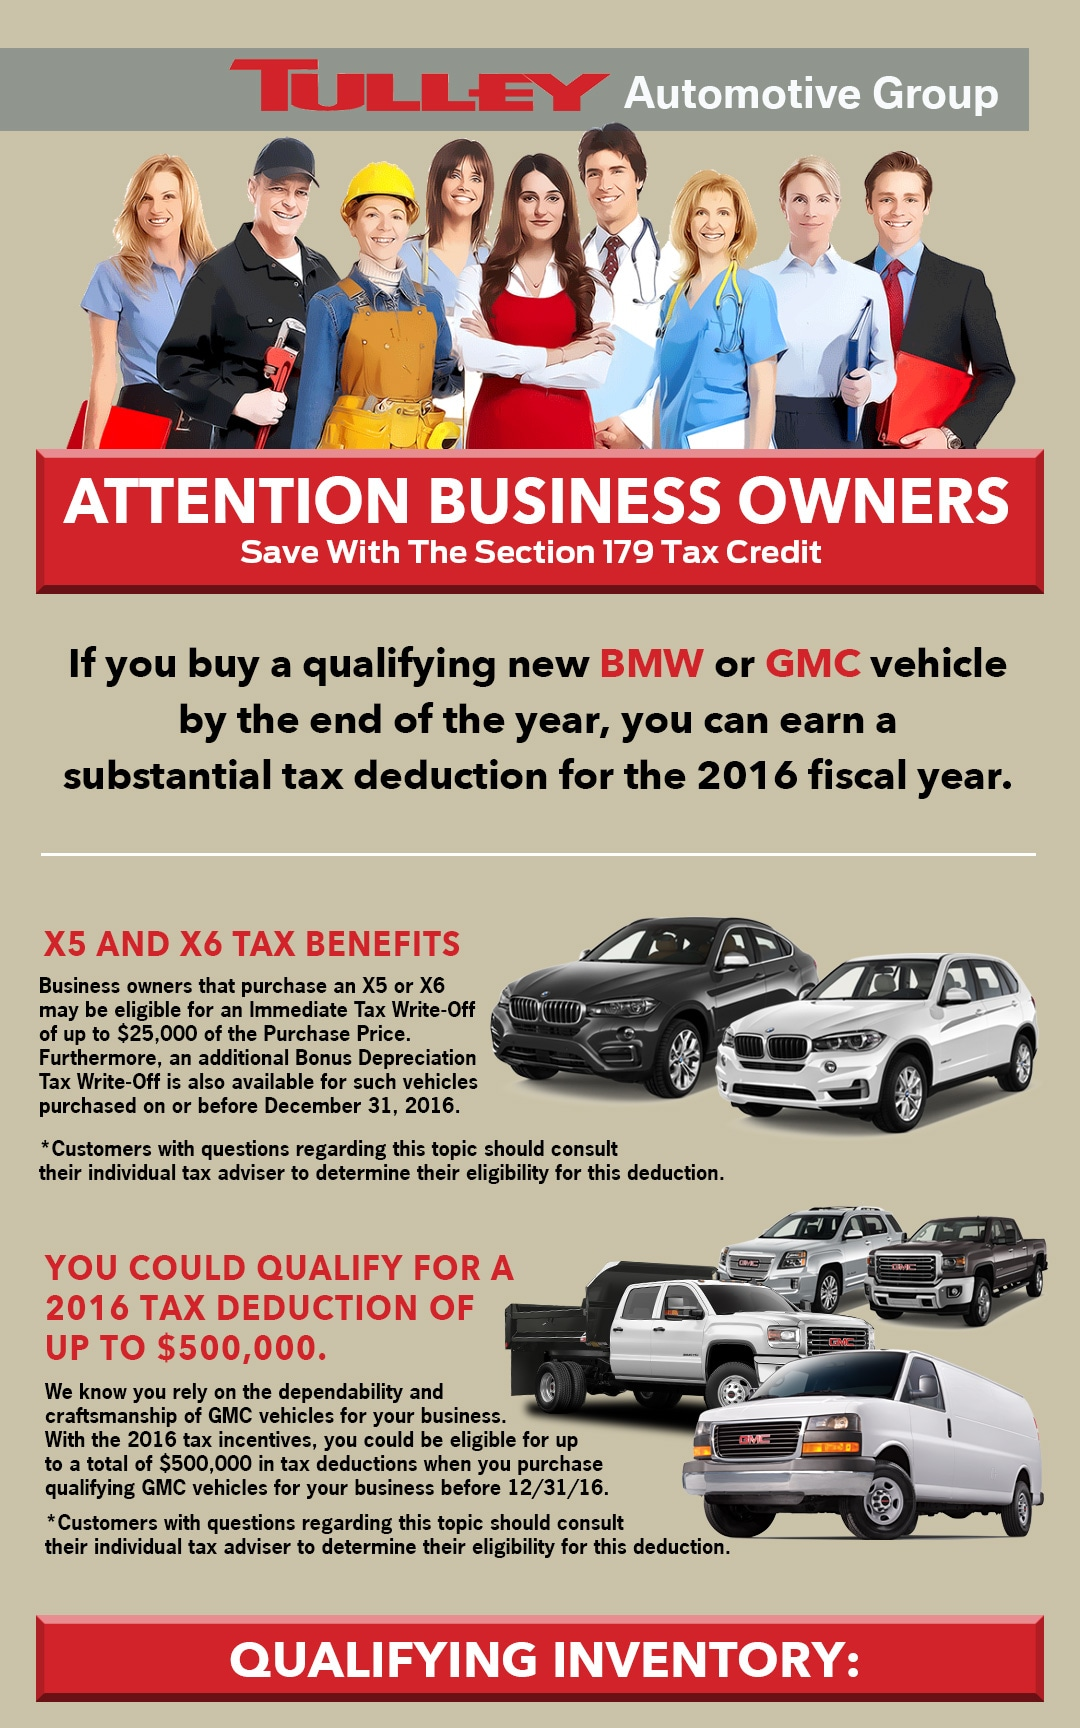 Tulley Automotive Group New BMW Mazda Buick GMC Dealership In - Nh buick dealers